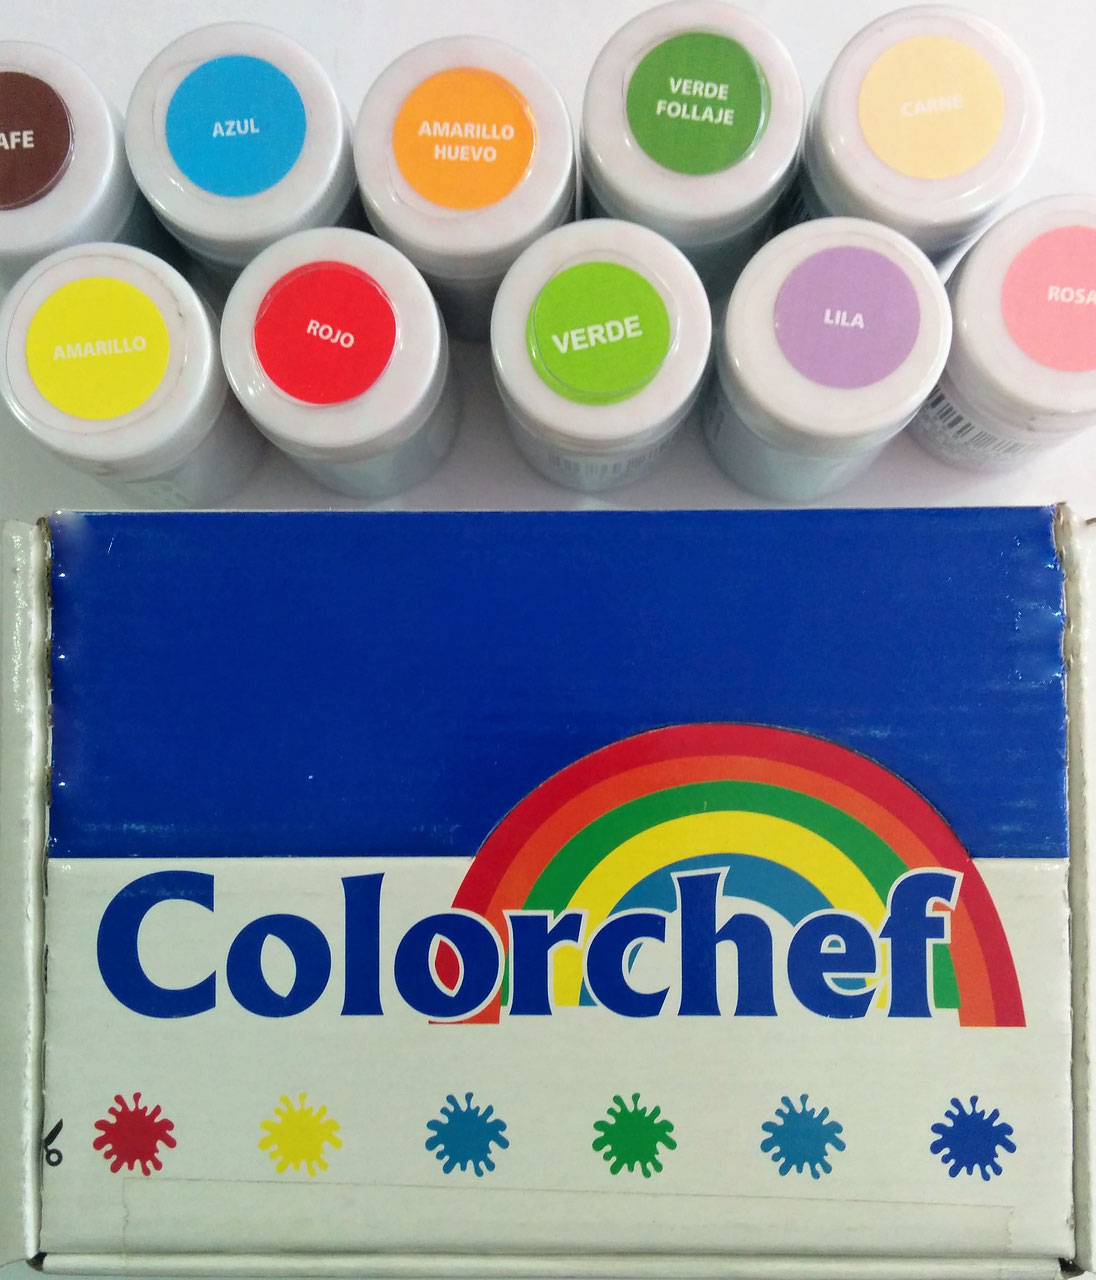 Color en pasta Colorchef 50g Verde Follaje